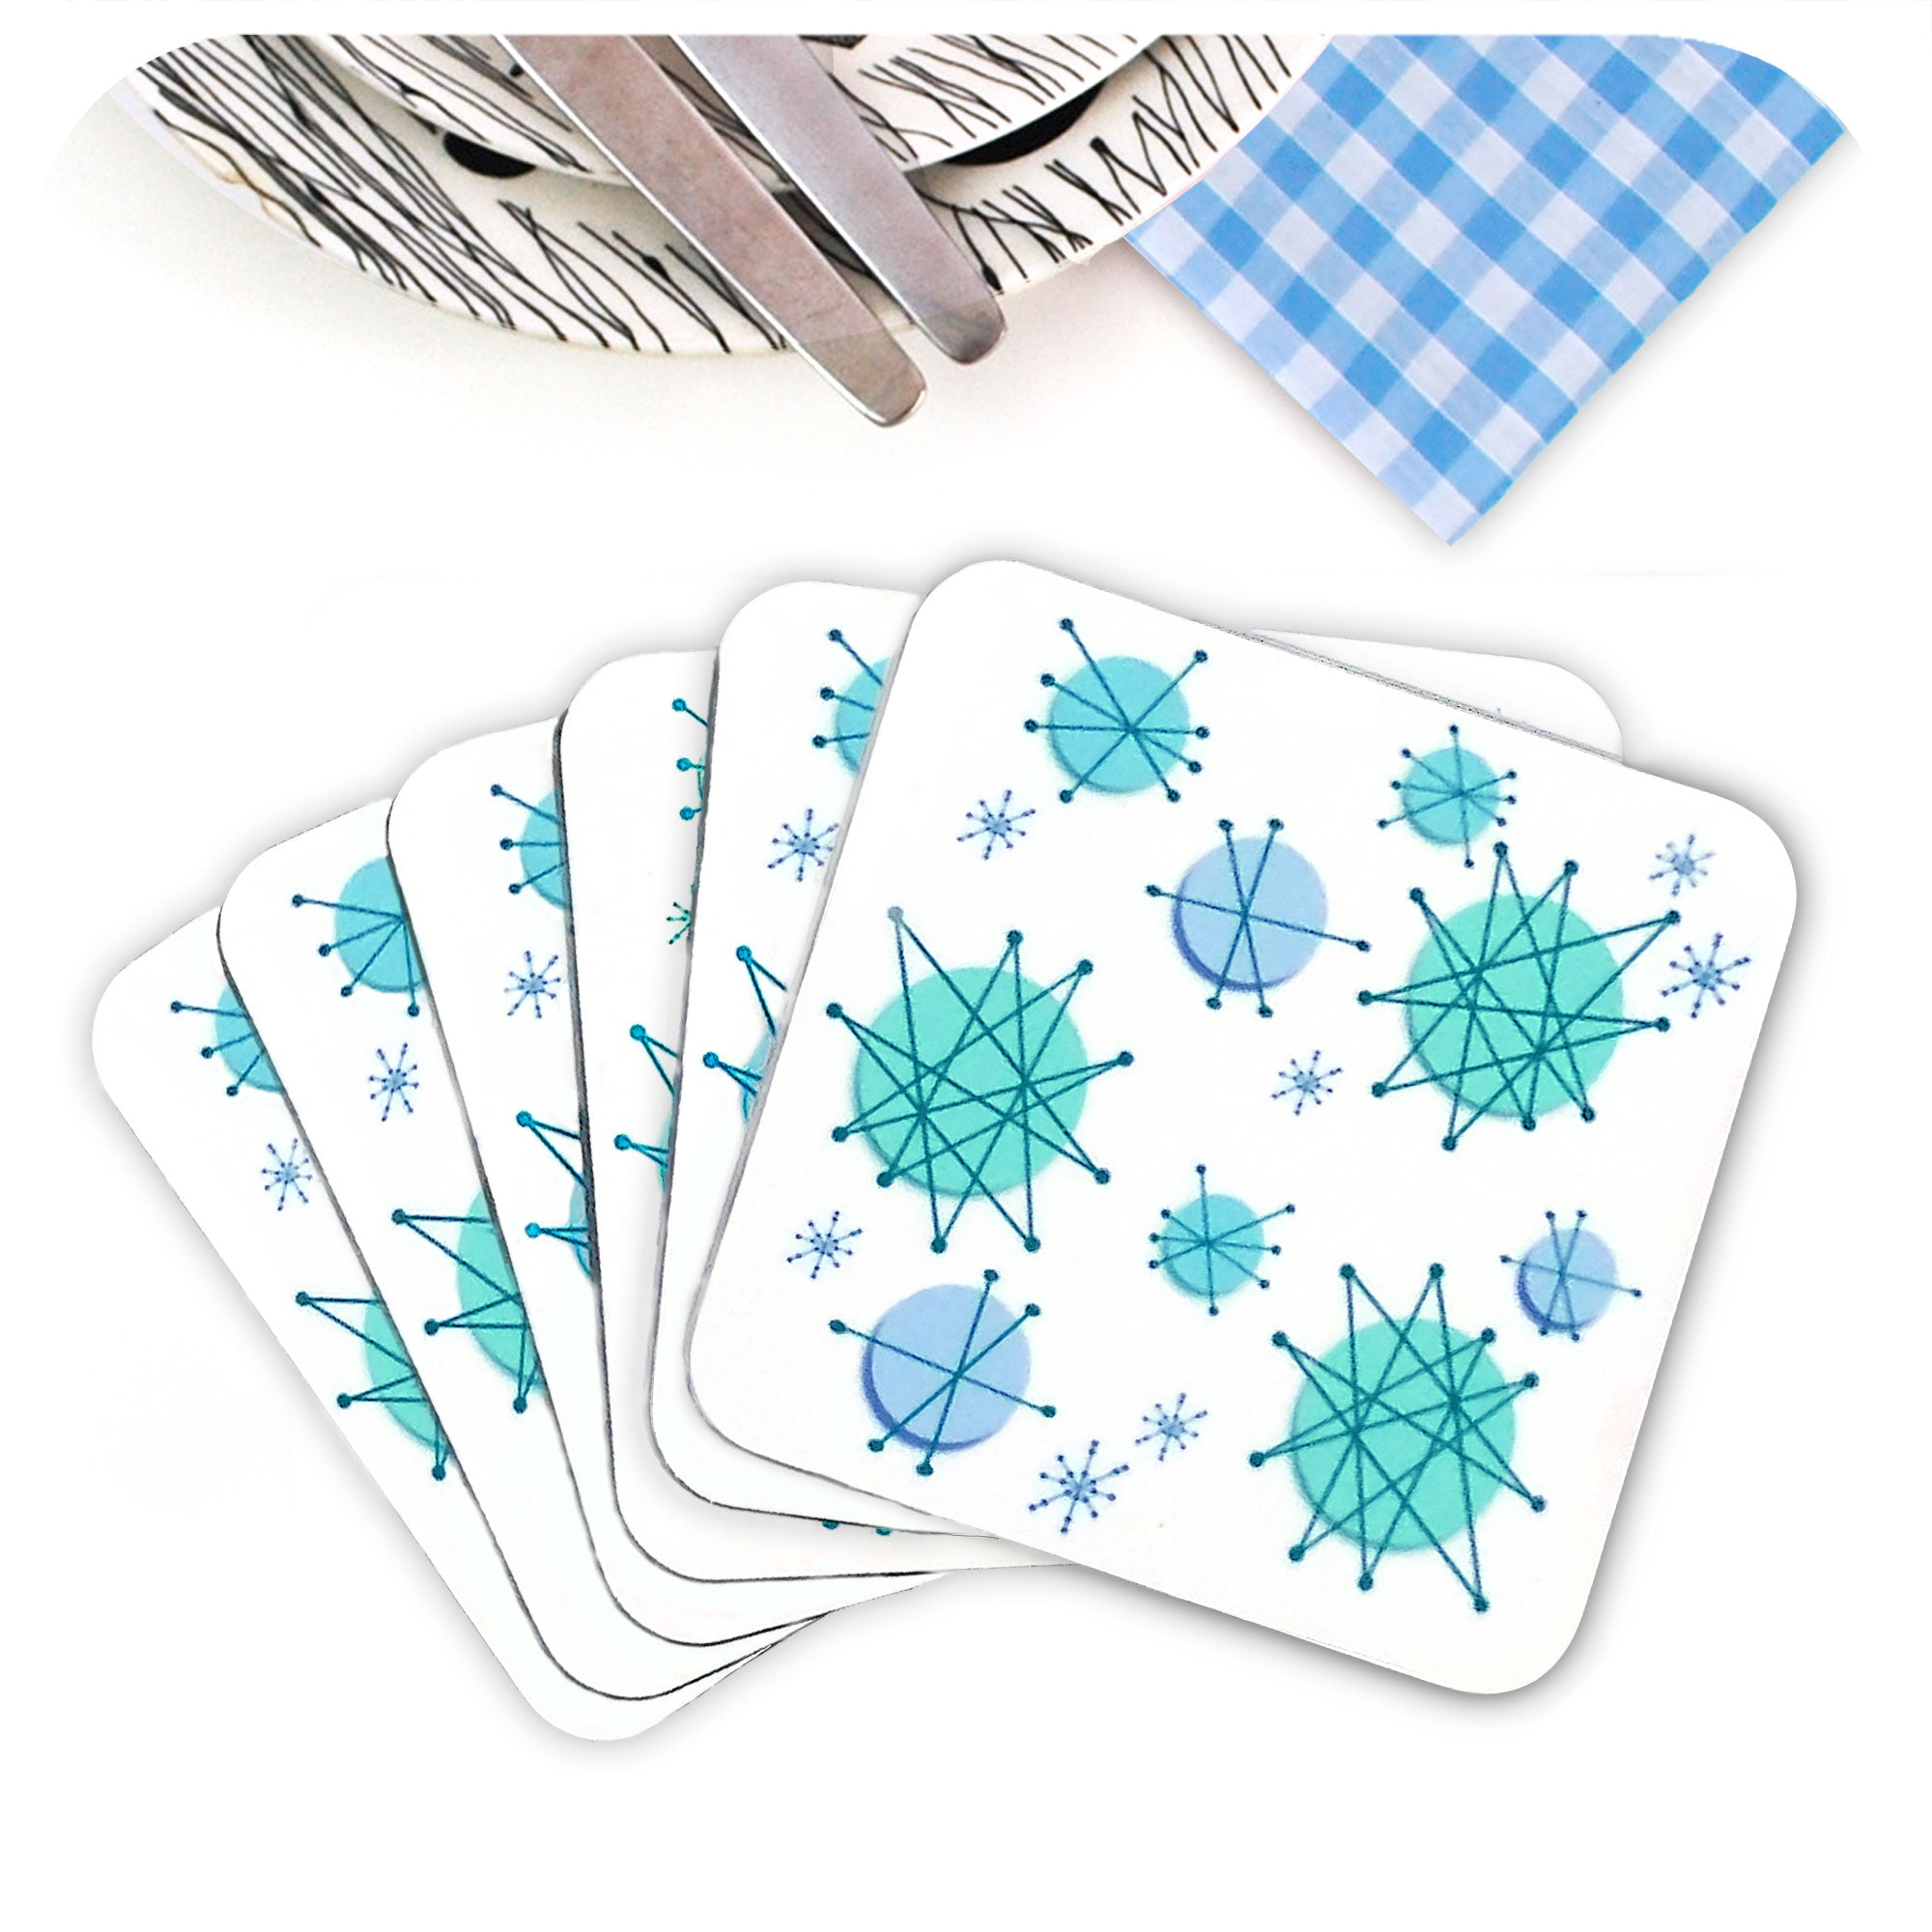 Atomic Starburst Coasters, set of 6 in a fan | The Inkabilly Emporium